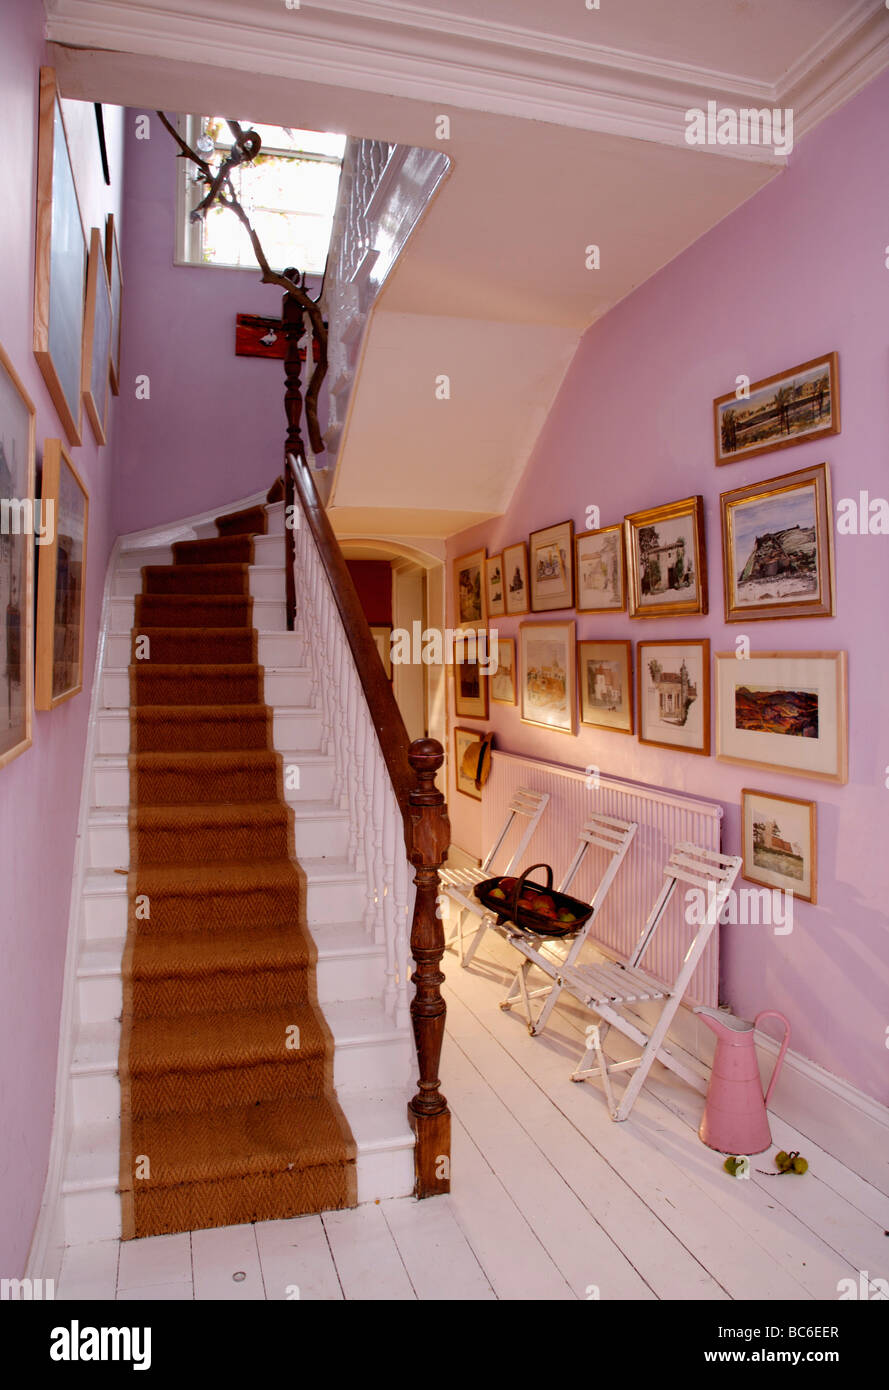 Red Carpet On White Staircase In Mauve Hall With White